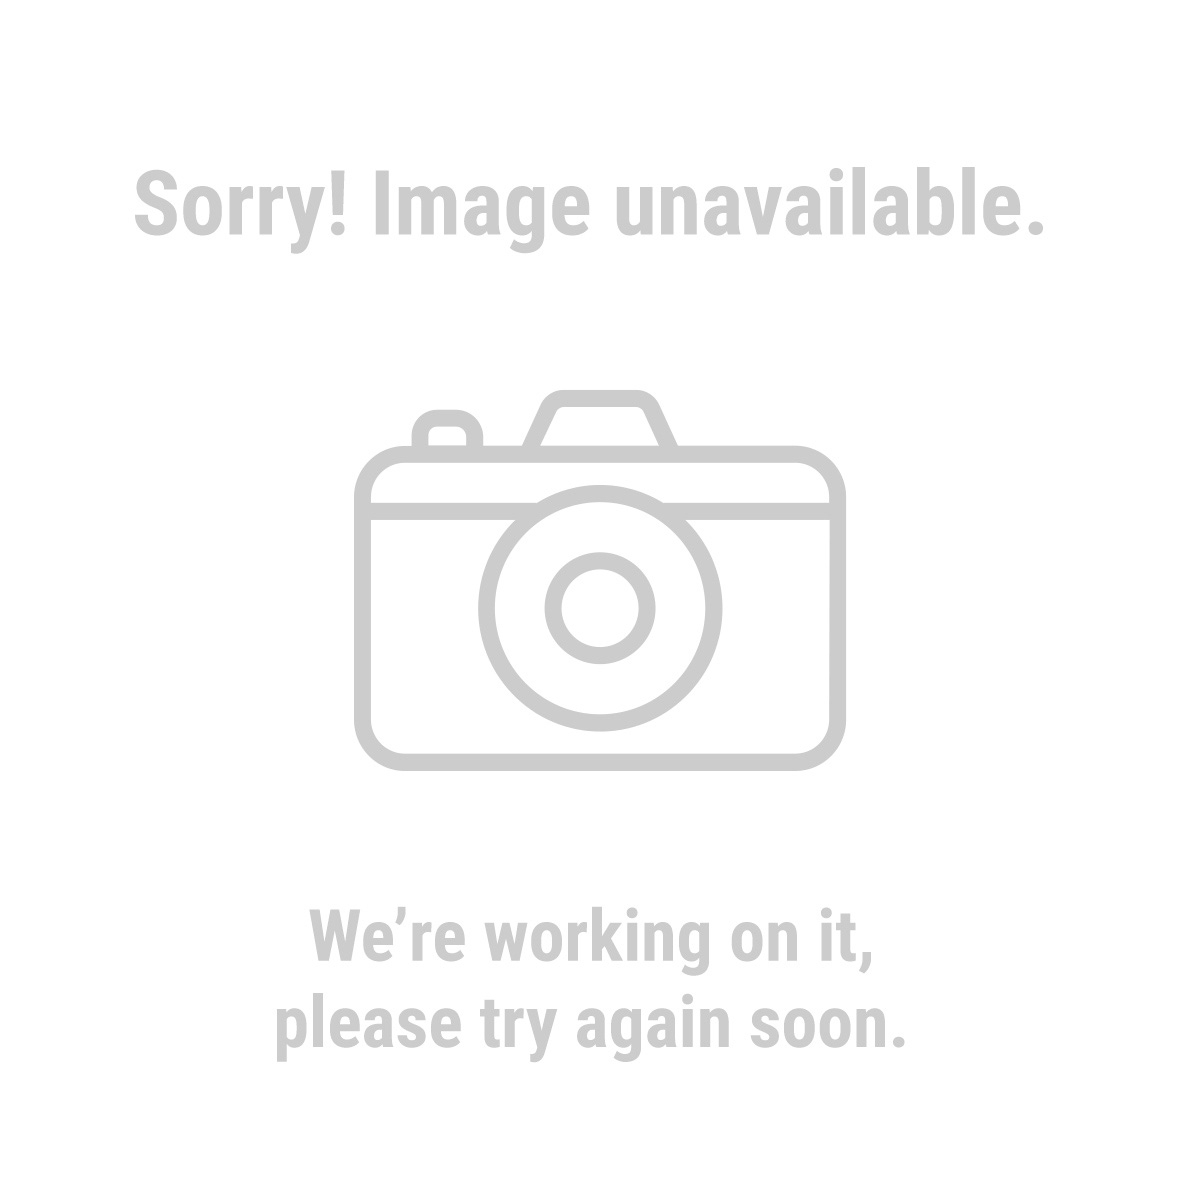 Predator Engines 62879 22 HP (708cc) V-Twin Vertical Shaft Gas Engine EPA